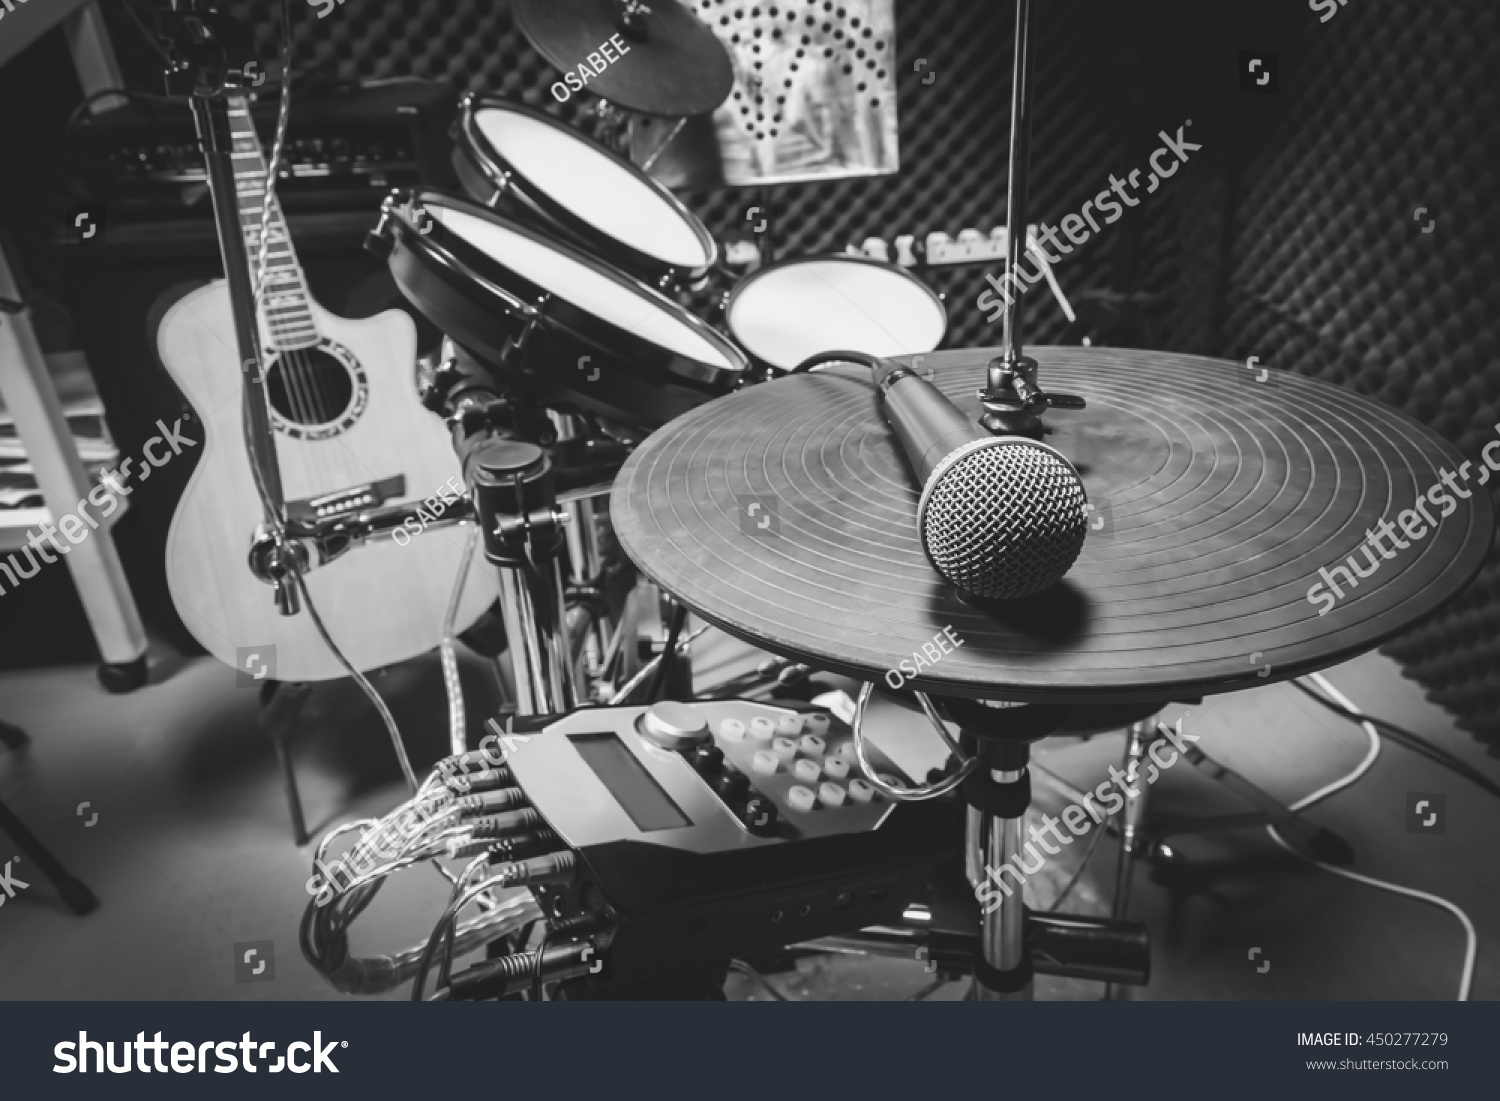 selective focus the microphone and music instruments the guitar electric drum speakers background music production band concept